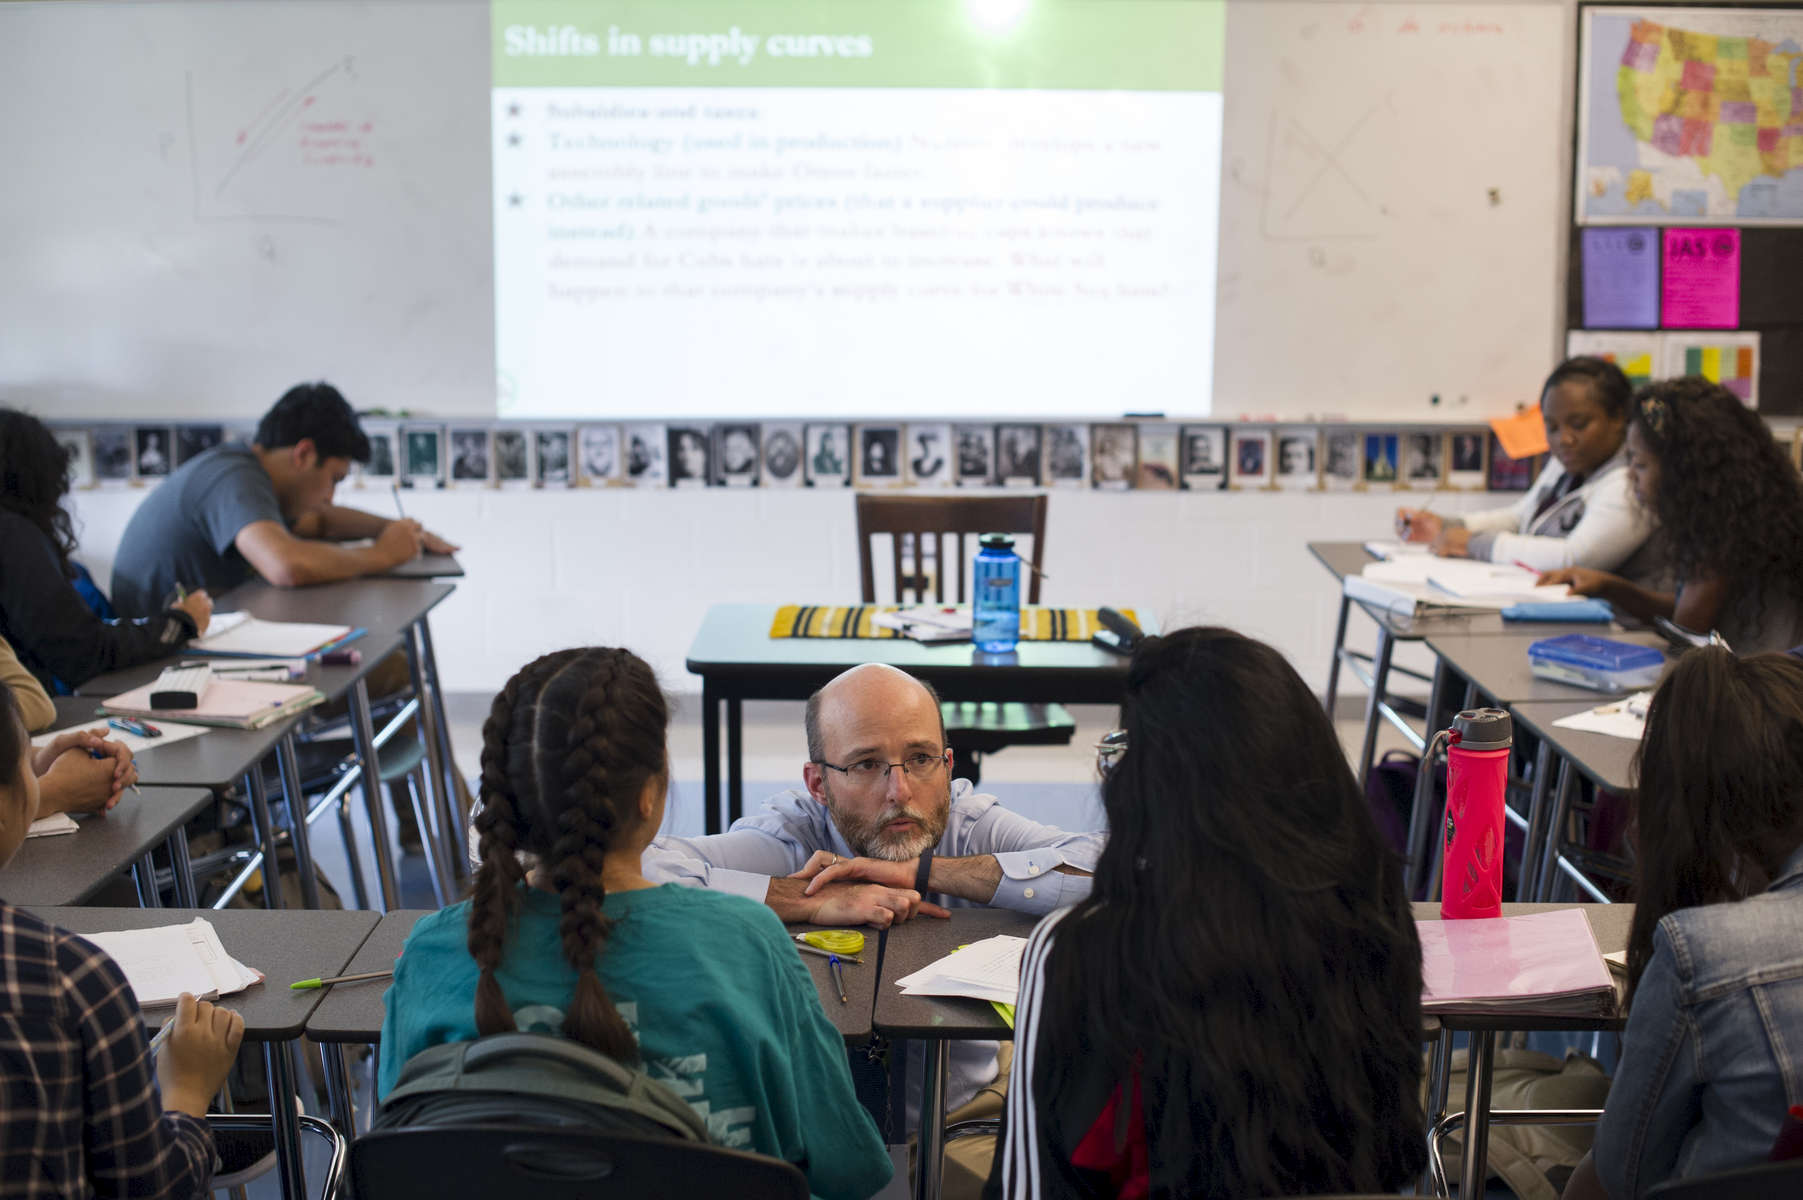 History teacher and college counselor Andrew Johnson speaks with students in his Economics class during a lesson on supply, demand and price relationships at George Westinghouse College Prep, October 6, 2016.